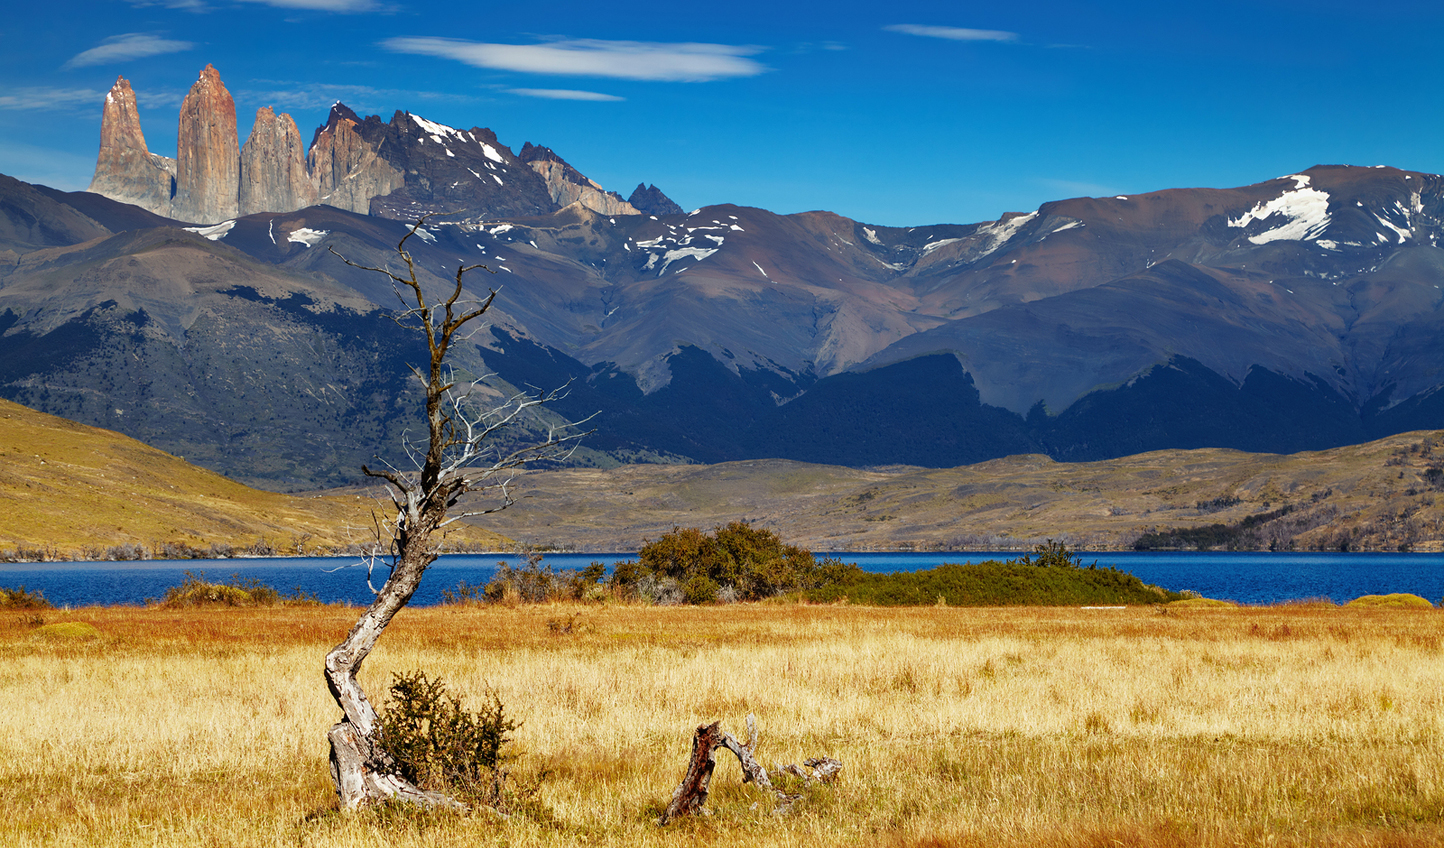 Discover the Torres del Paine National Park